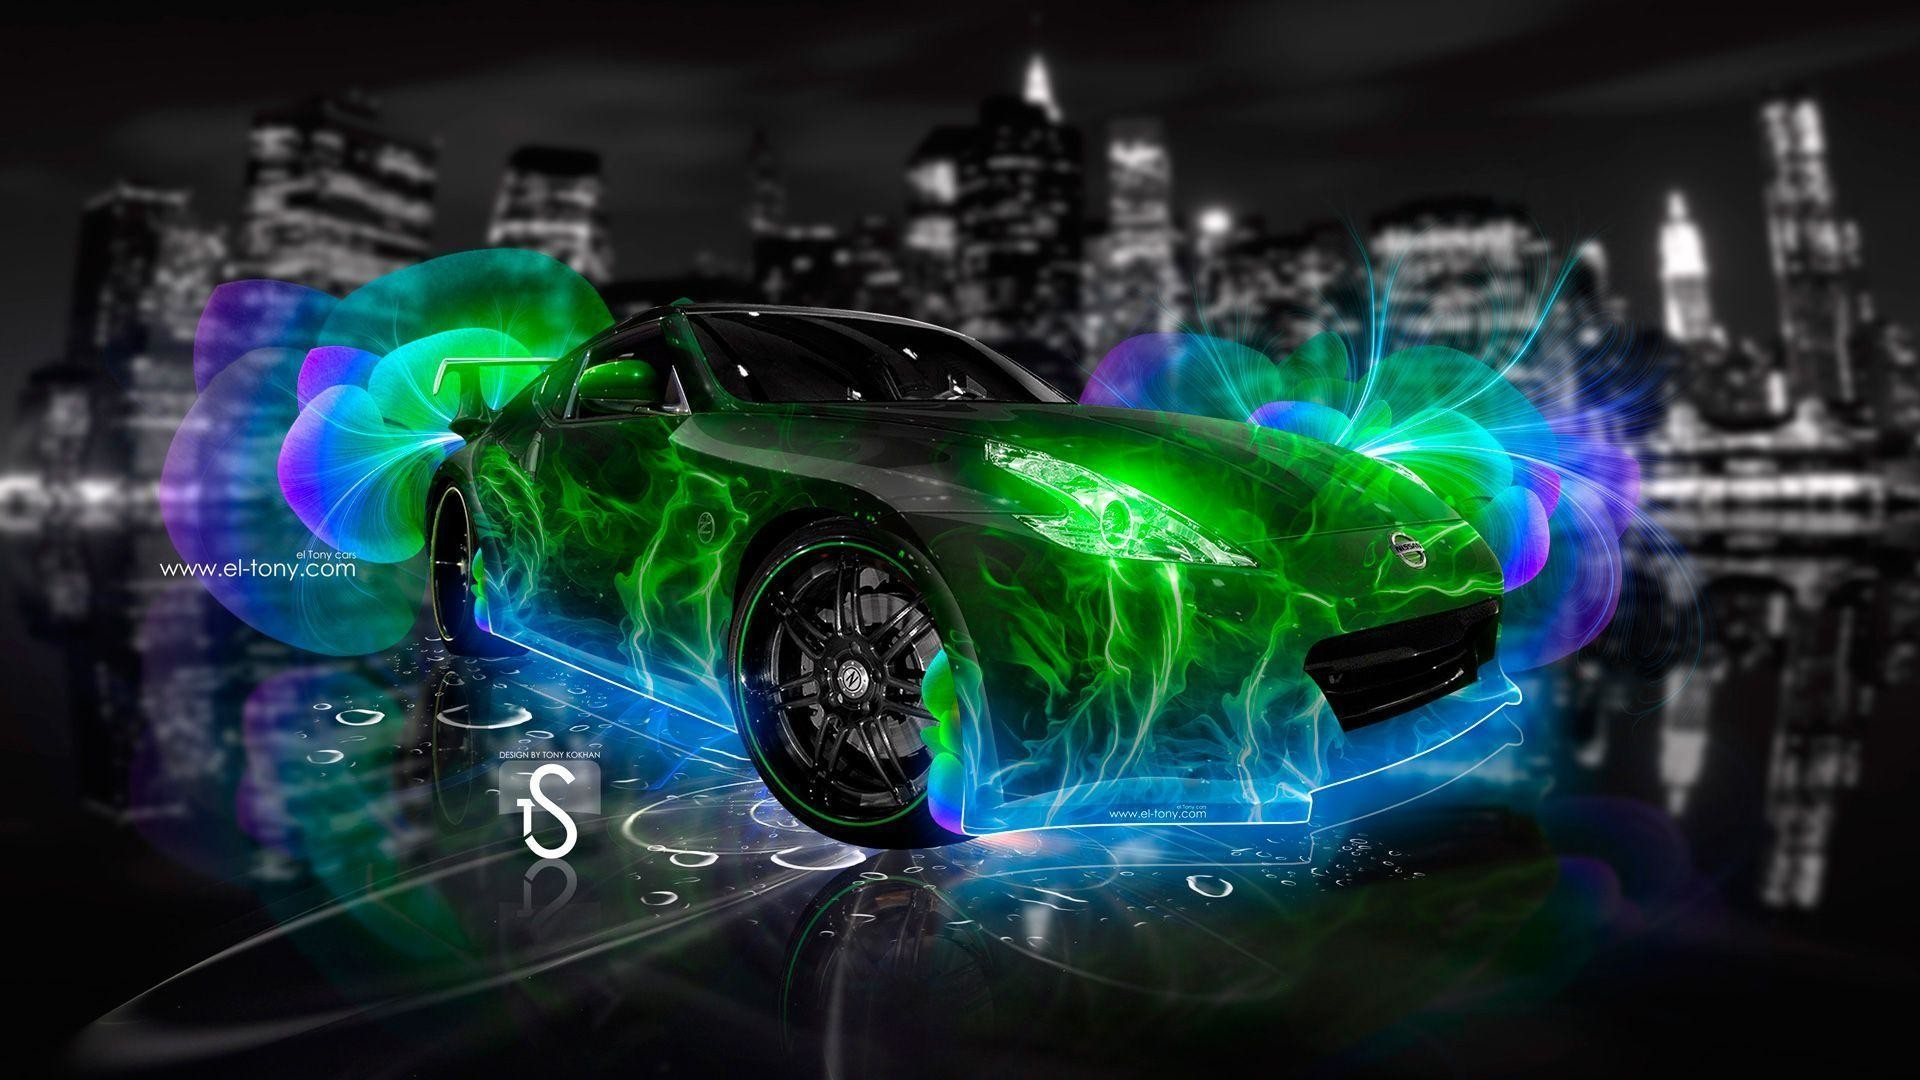 1920x1080 Wallpapers For > Green Neon Abstract Wallpaper